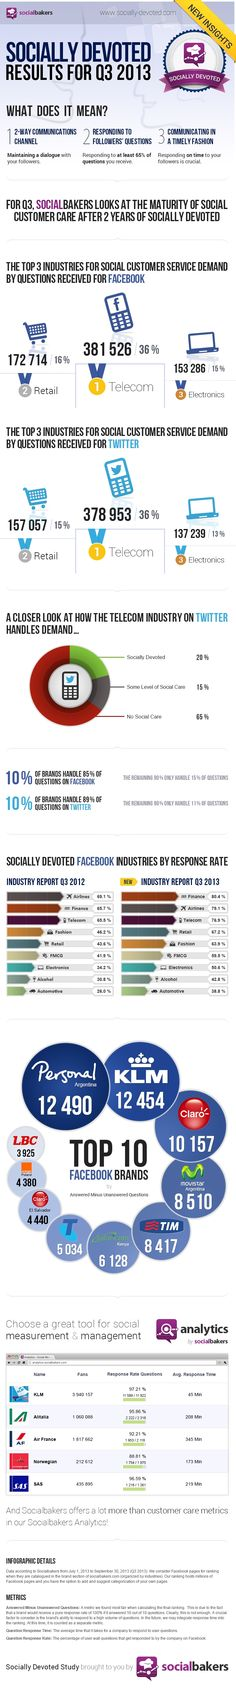 INFOGRAPHIC: Which Industries, Brands Excel At Answering Questions On Facebook?